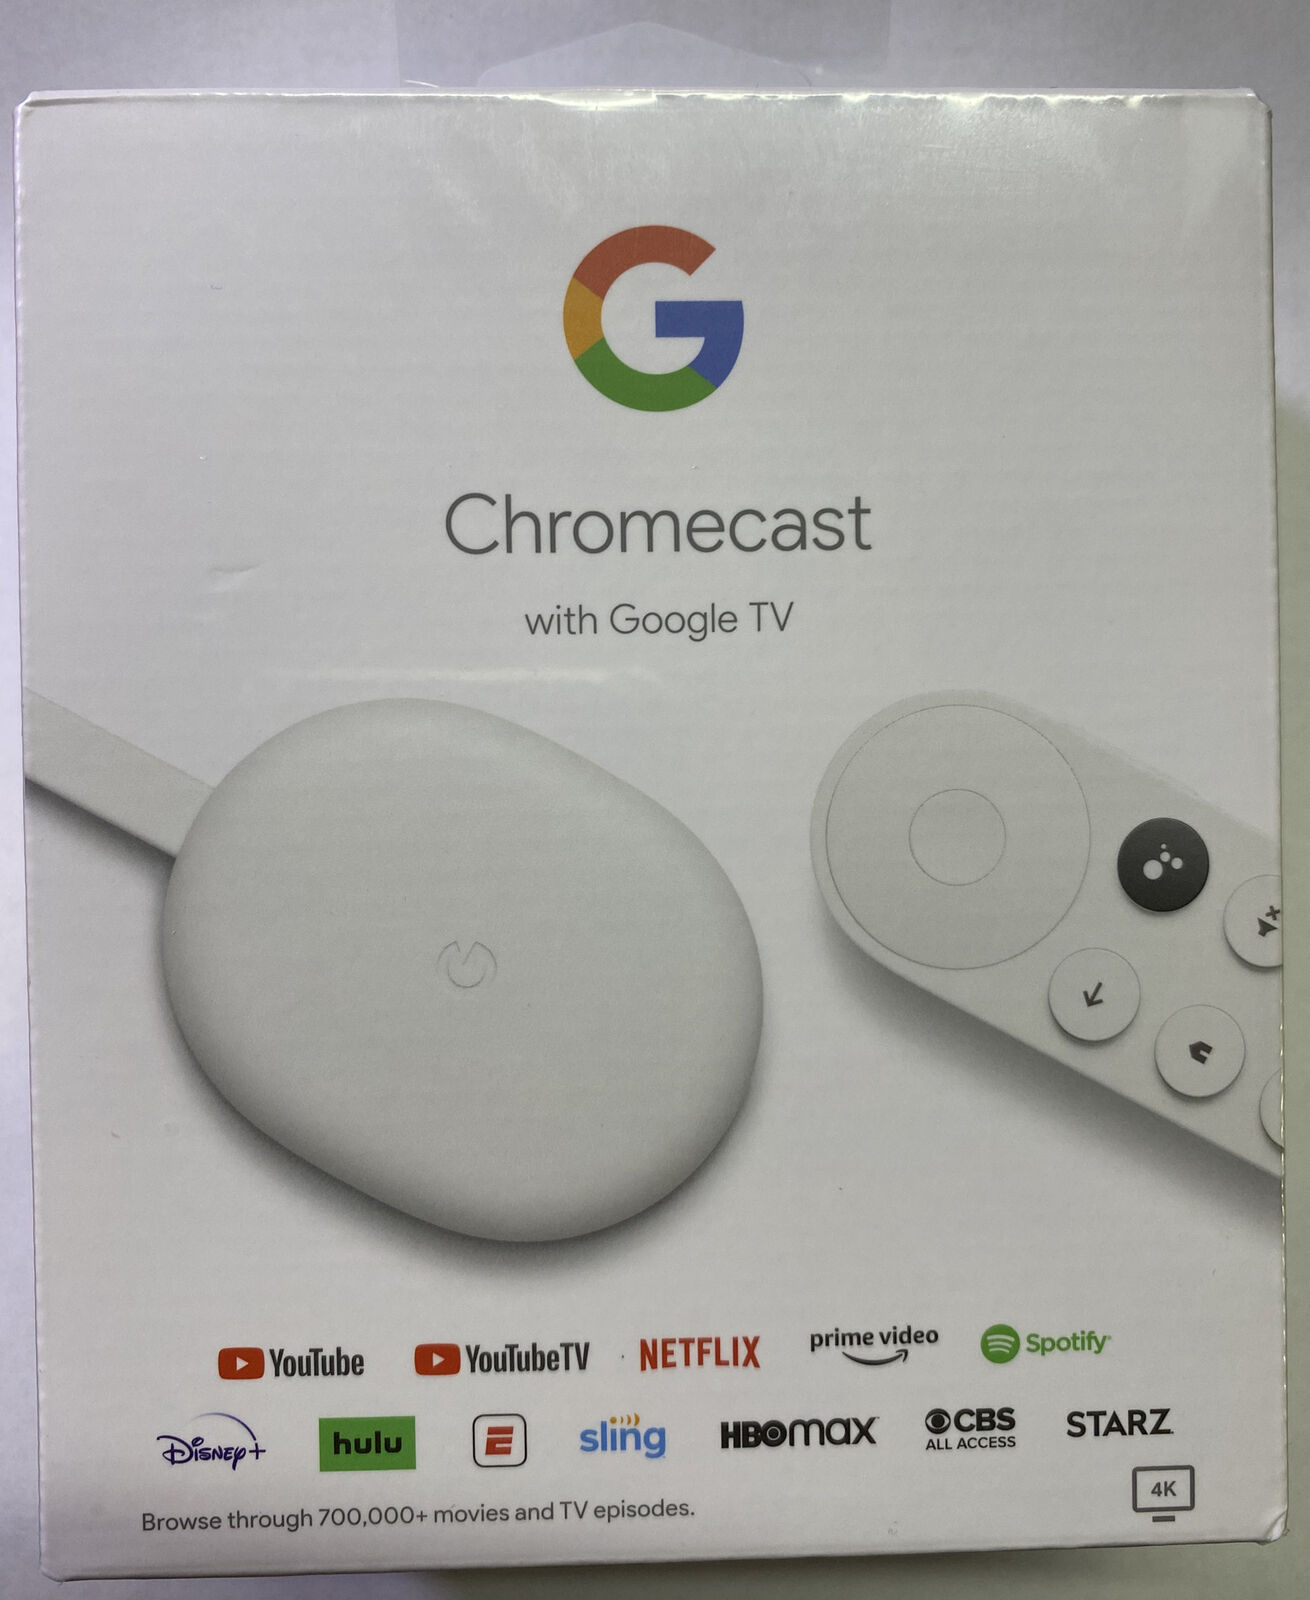 Google Chromecast with Google TV 4K HDR Streaming Media Player Google Assistant assistant chromecast google hdr media player streaming with